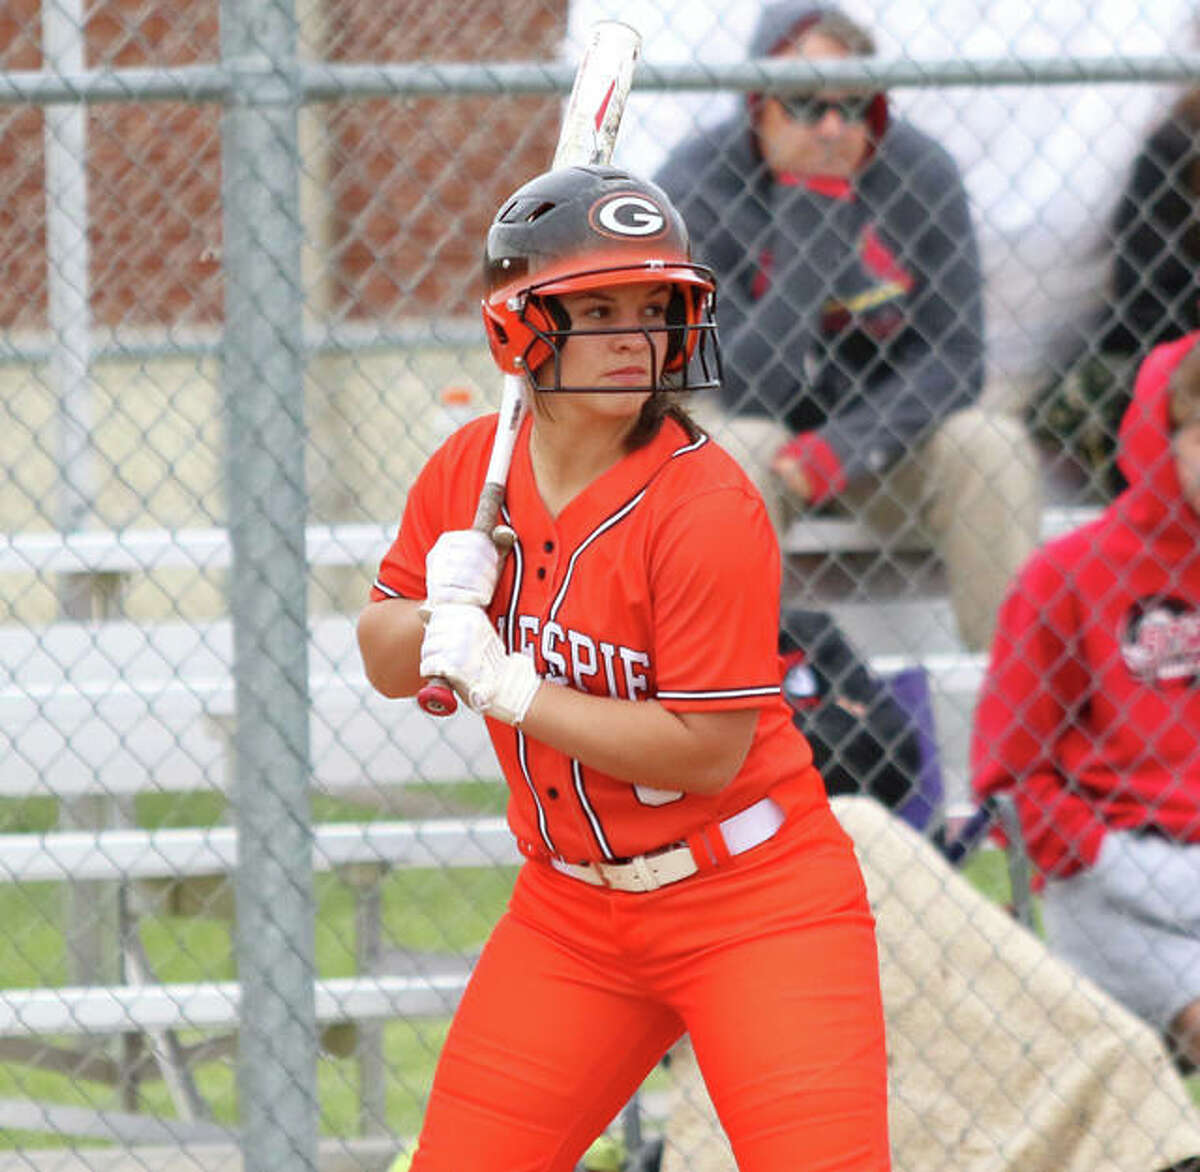 Gillespie shortstop Chloe Segarra, shown hitting in a game earlier this season in Gillespie, drove in two runs Tuesday in a win at Breese Mater Dei that gave the Miners their 20th win of the season.